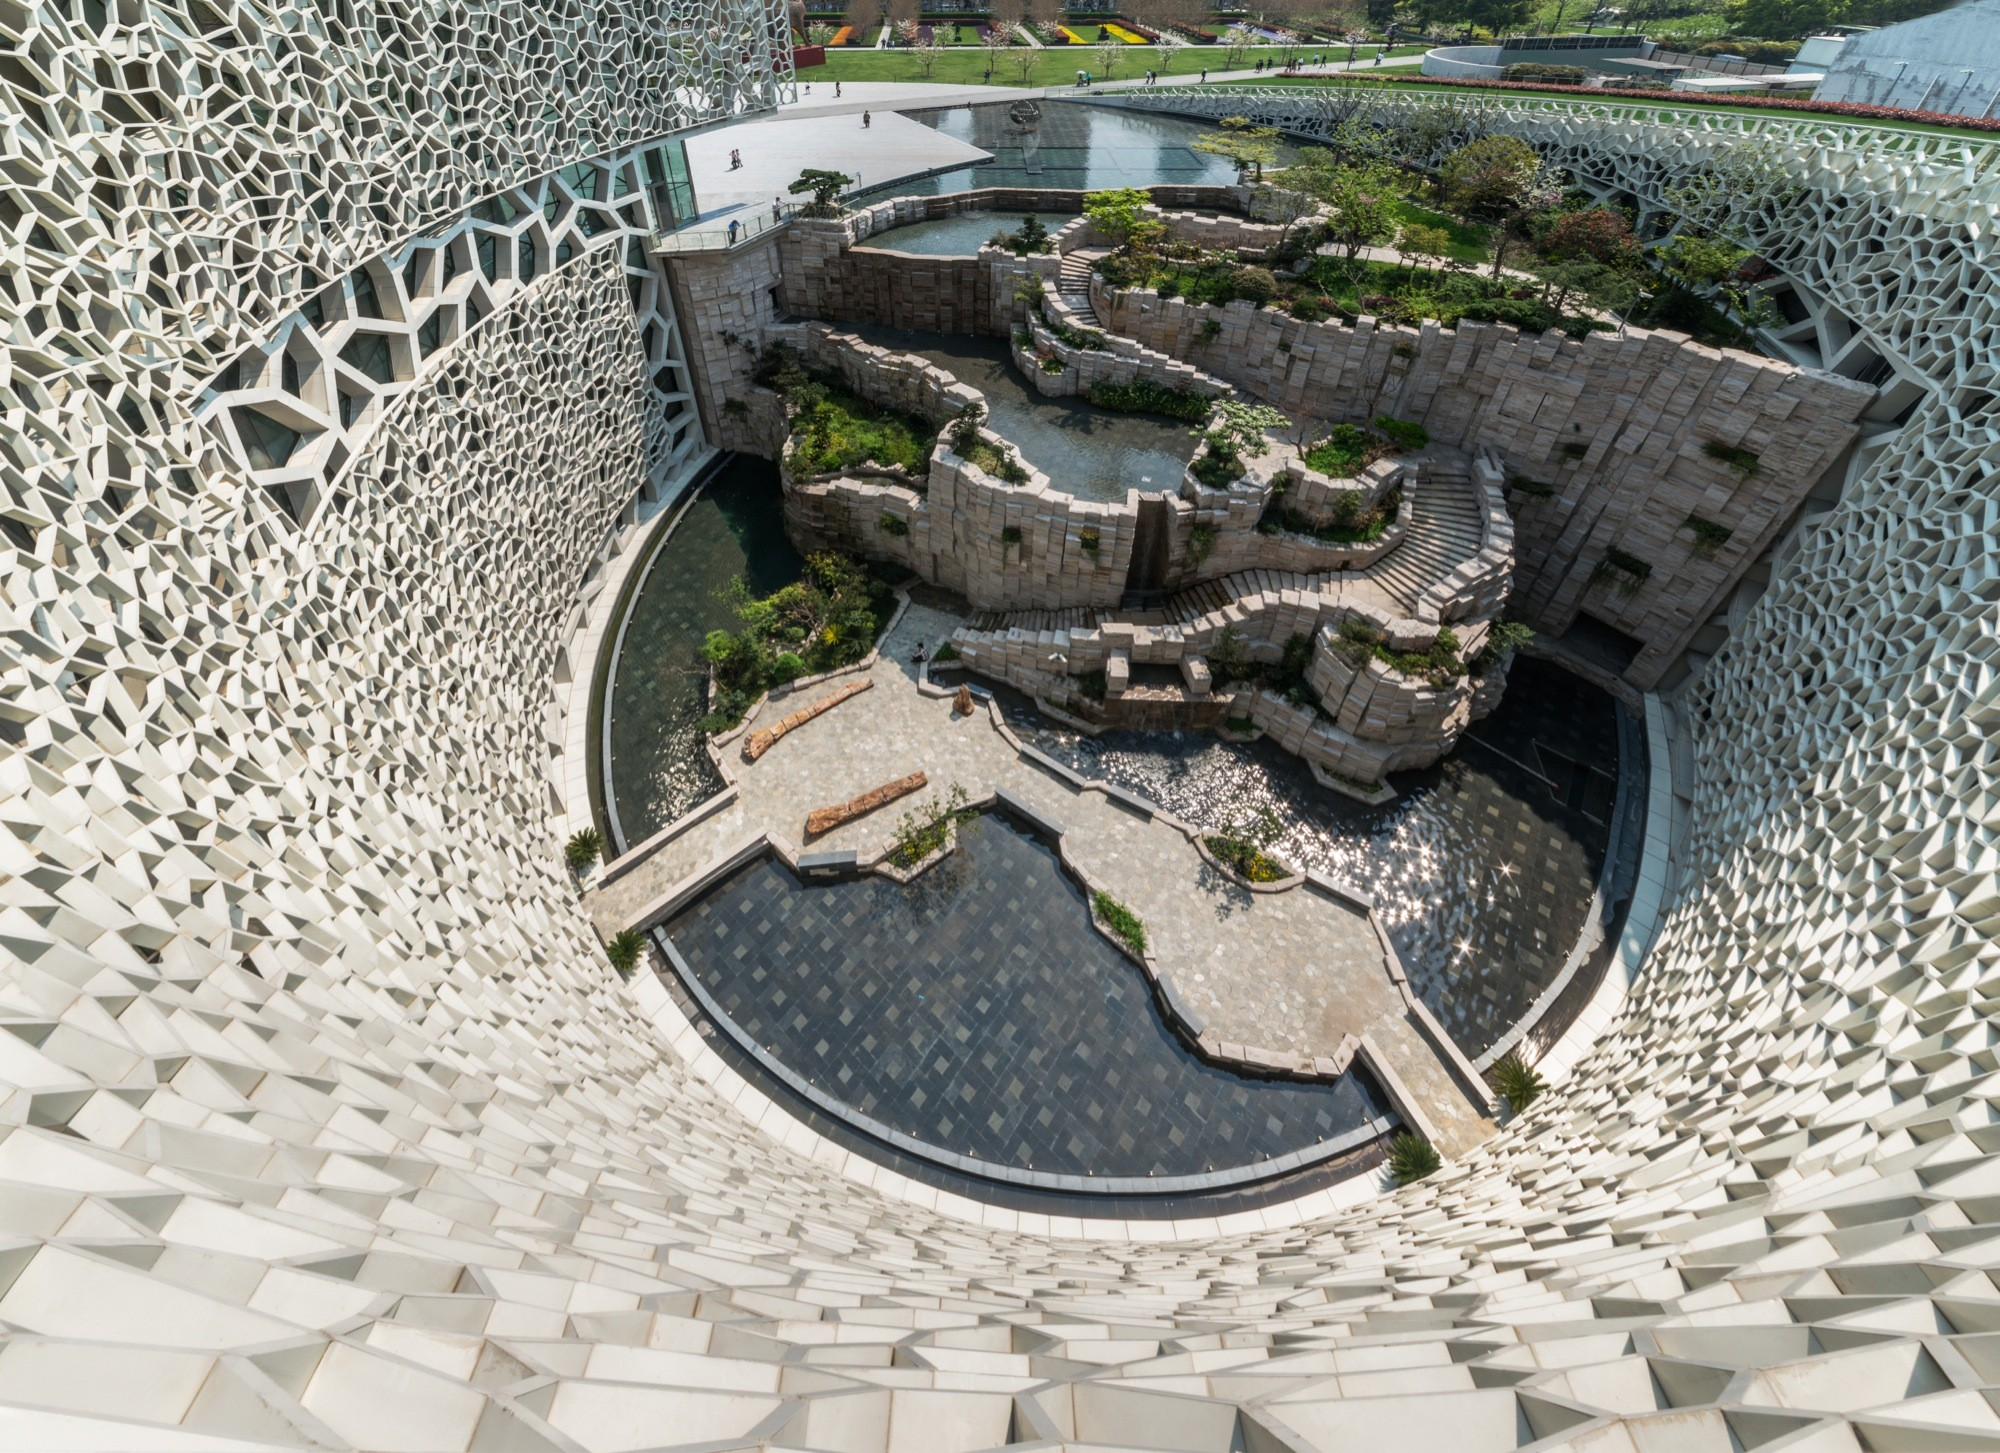 Shanghai Natural History Museum / Perkins+Will, © James and Connor Steinkamp